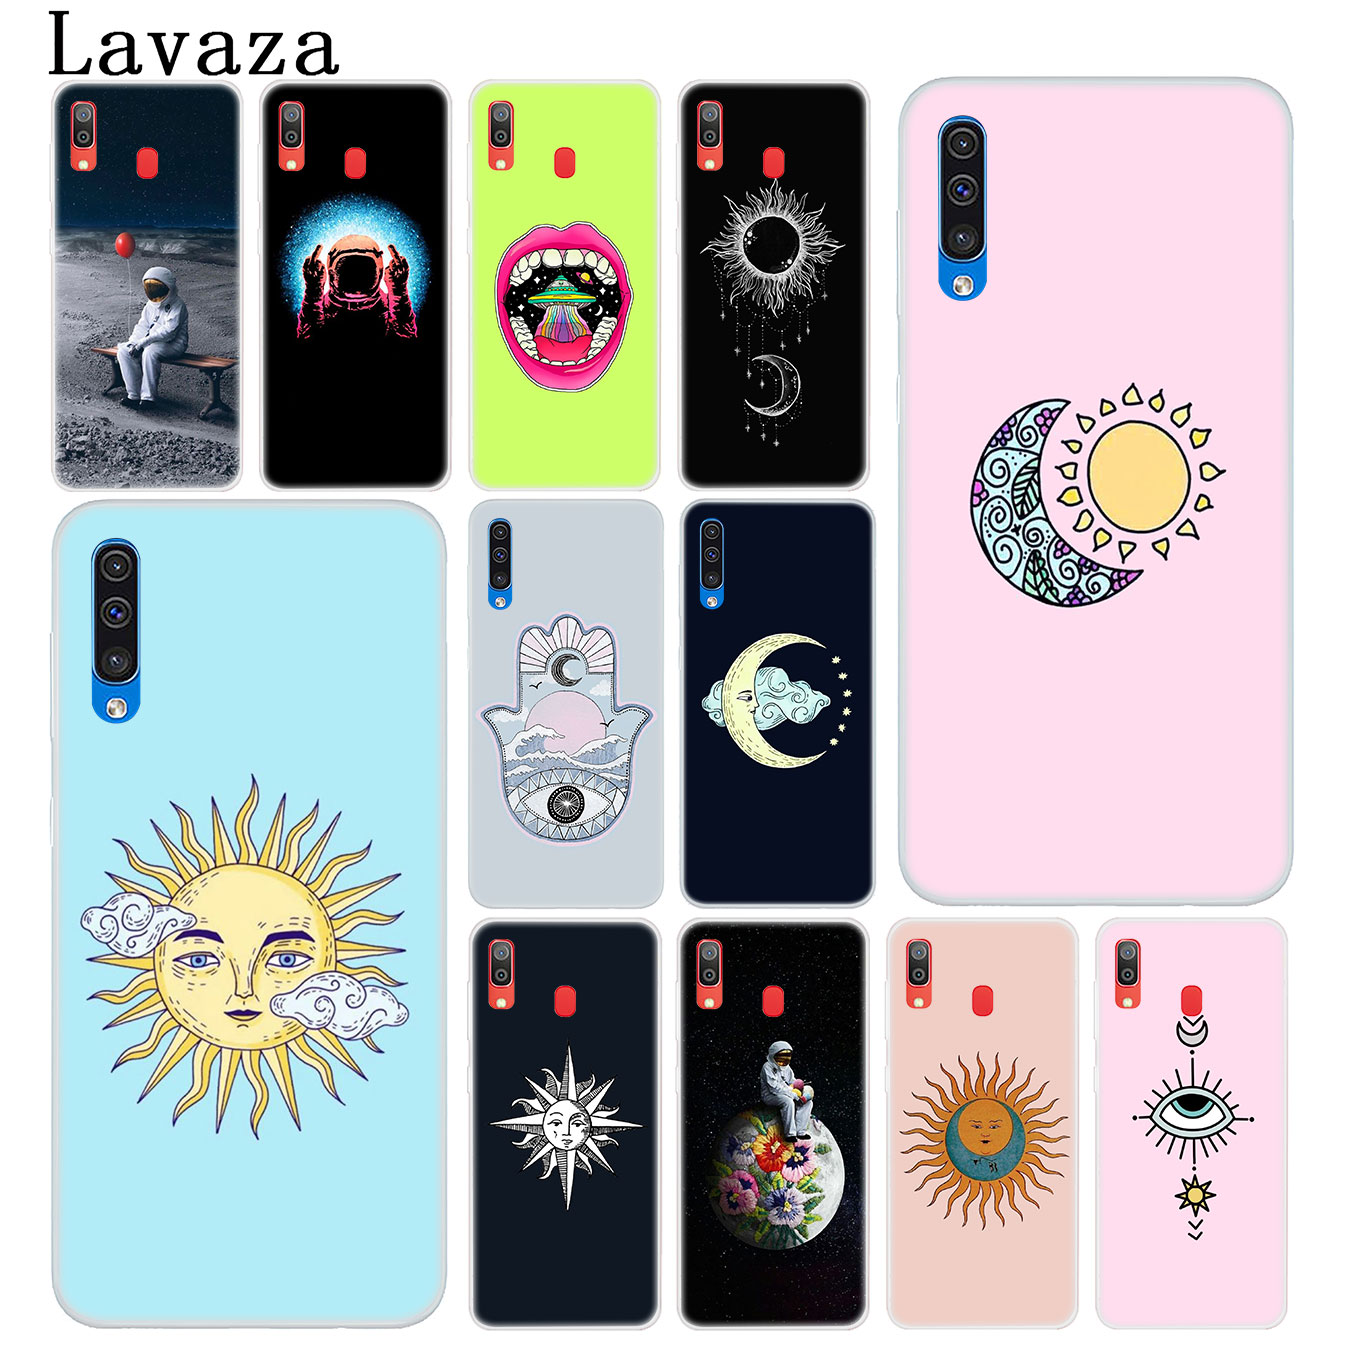 Phone Bags & Cases Glorious Lavaza Sun And Moon Wiccan Hard Transparent Phone Case For Samsung Galaxy A10 A30 A40 A50 A70 M10 M20 M30 Cover Cellphones & Telecommunications